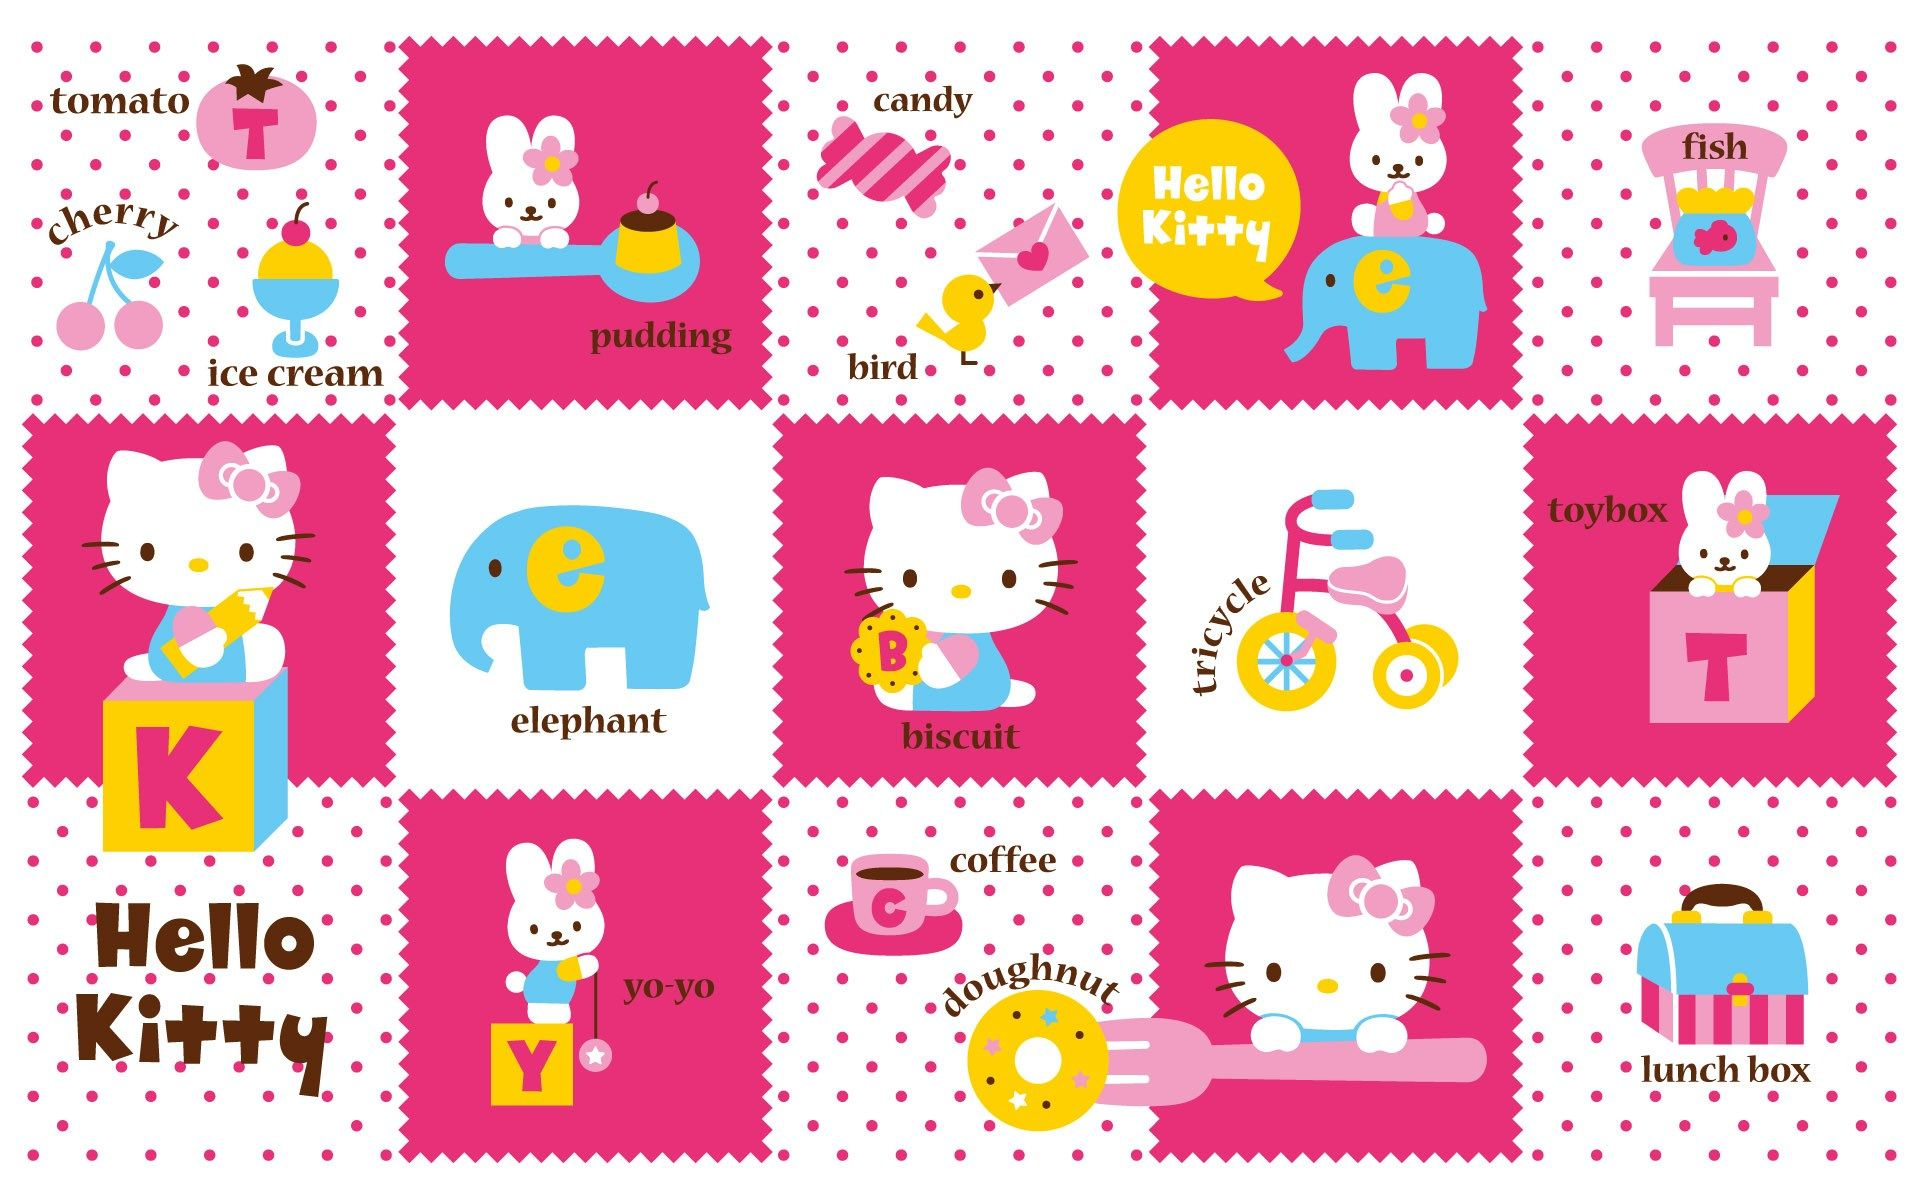 Who android wallpaper pictures of snow free hello kitty wallpaper - Download Hd Hello Kitty Images Ololoshka Pinterest Hello Kitty Images Kitty Images And Hello Kitty